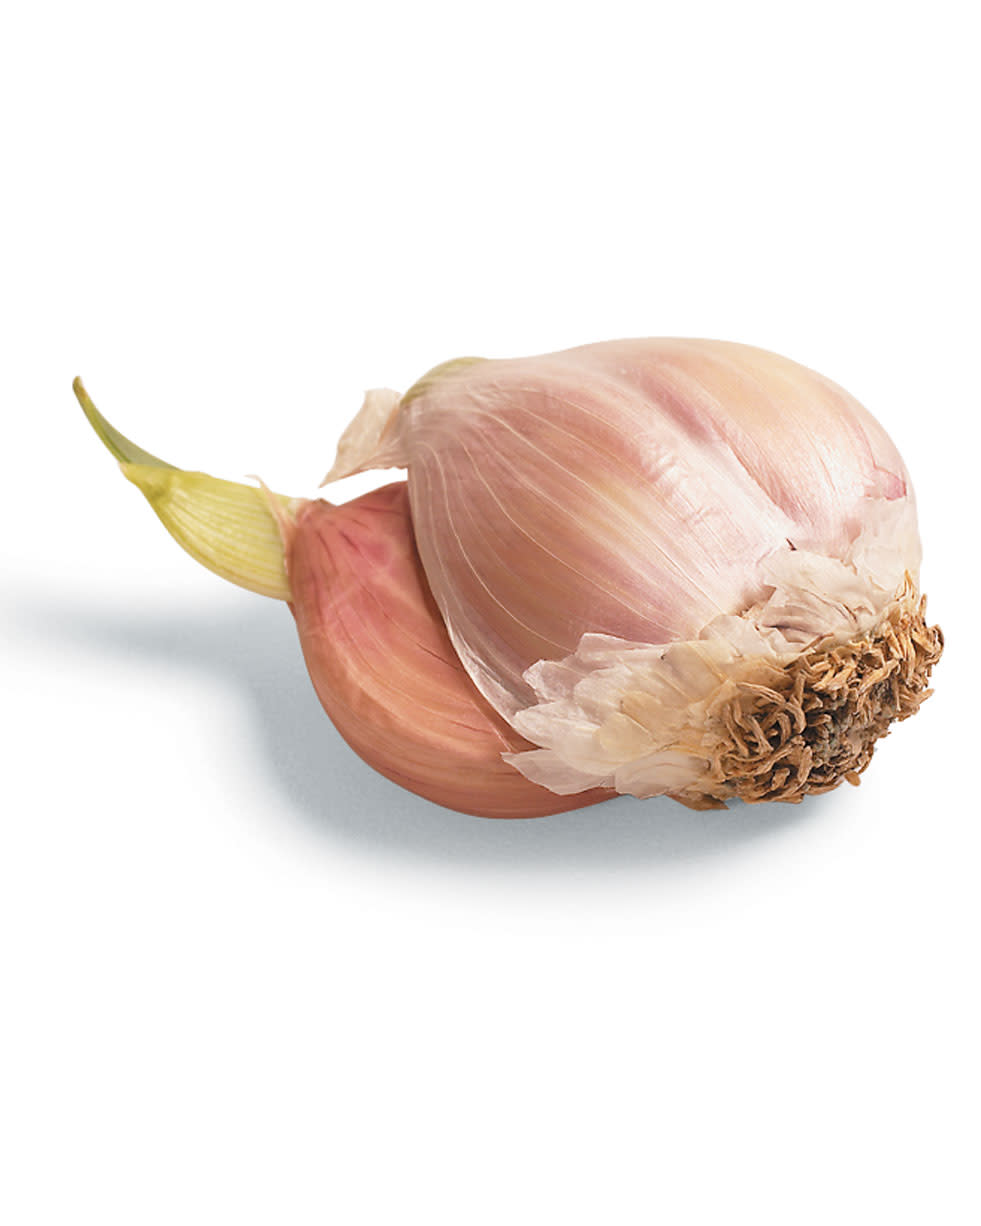 Tips-Remove-Germ-from-Garlic-to-Improve-Flavor